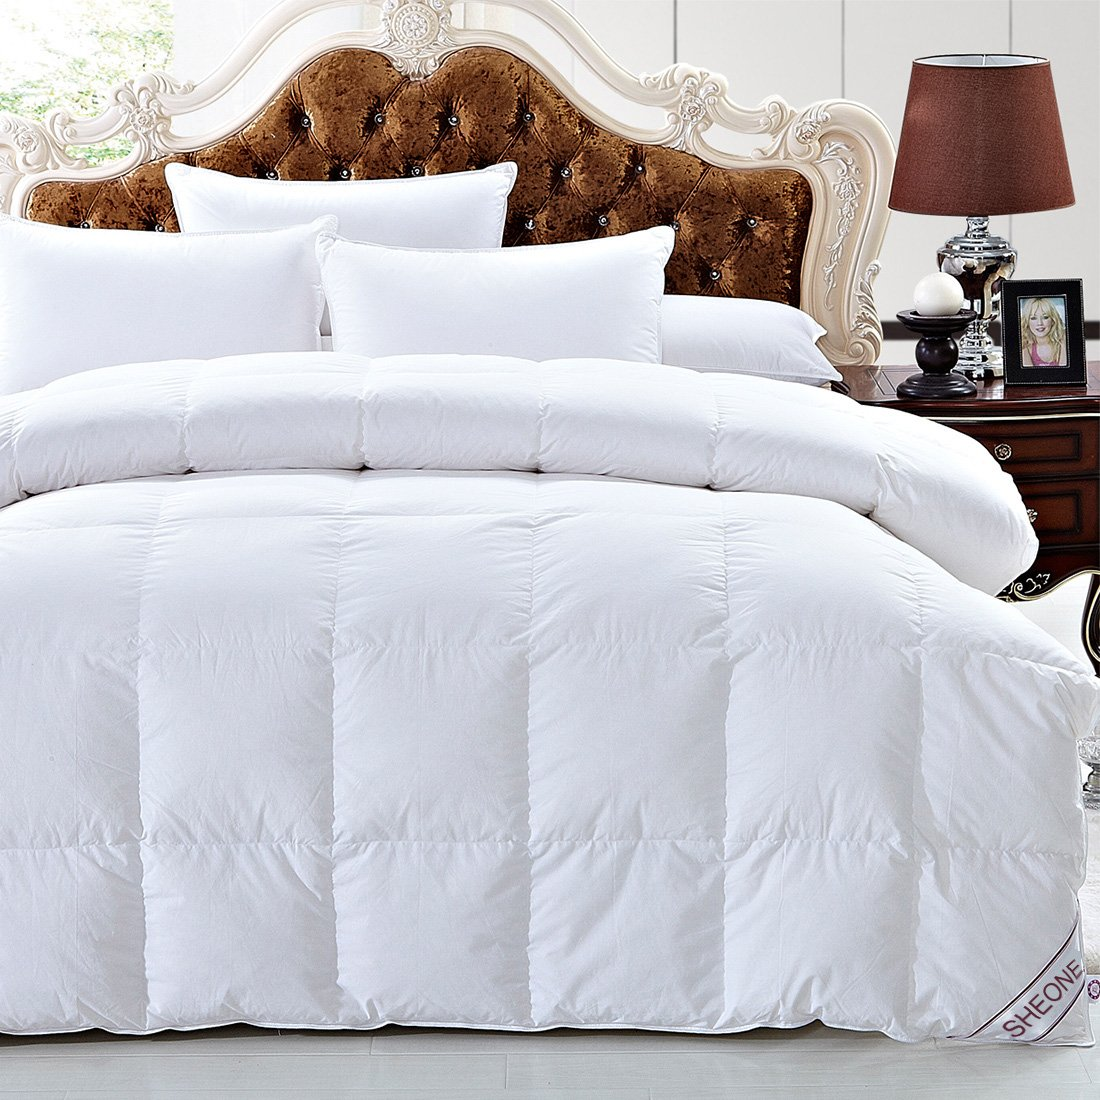 White Goose Down Comforter Full/Queen Size 600 Thread Count 100% Cotton 750+ fill power Shell Down Proof-Solid White Hypo-allergenic with Corner Tab by SHEONE (Image #2)